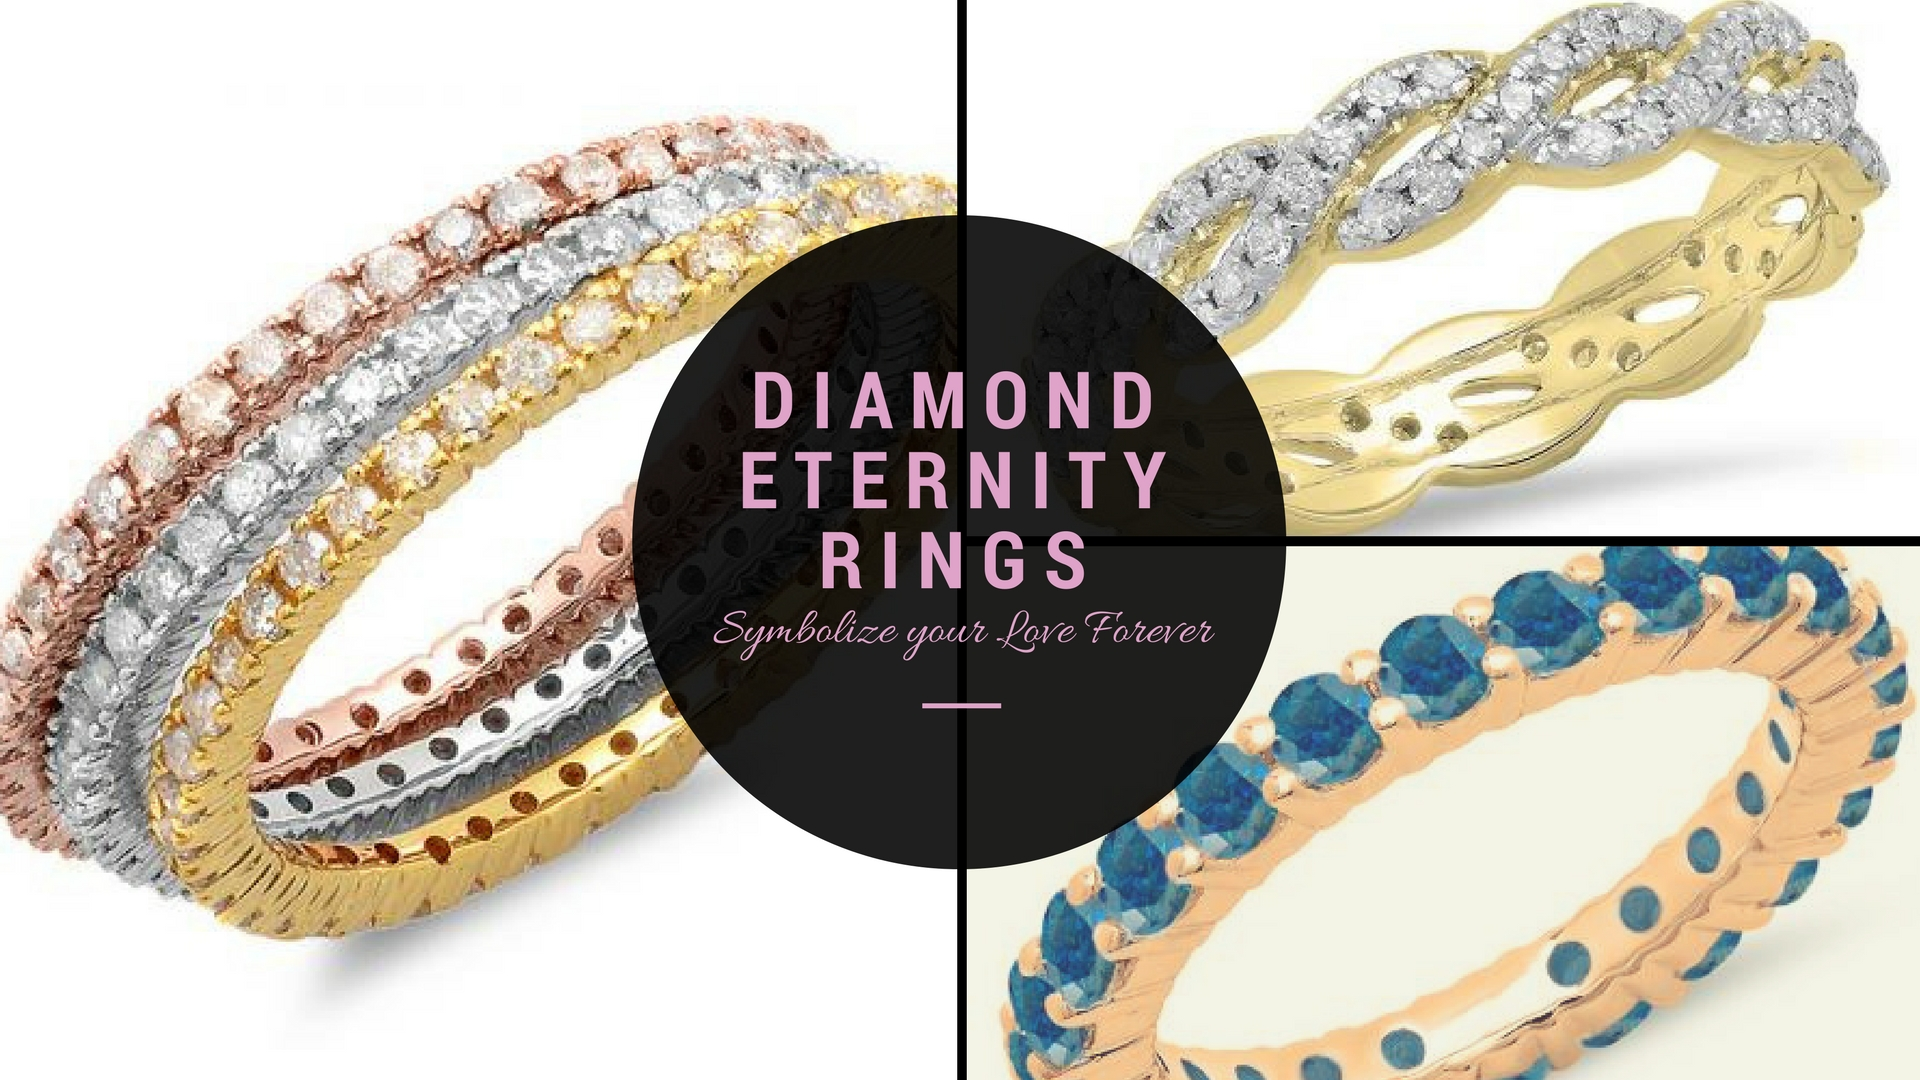 Diamond Eternity Rings Symbolize your Love Forever!